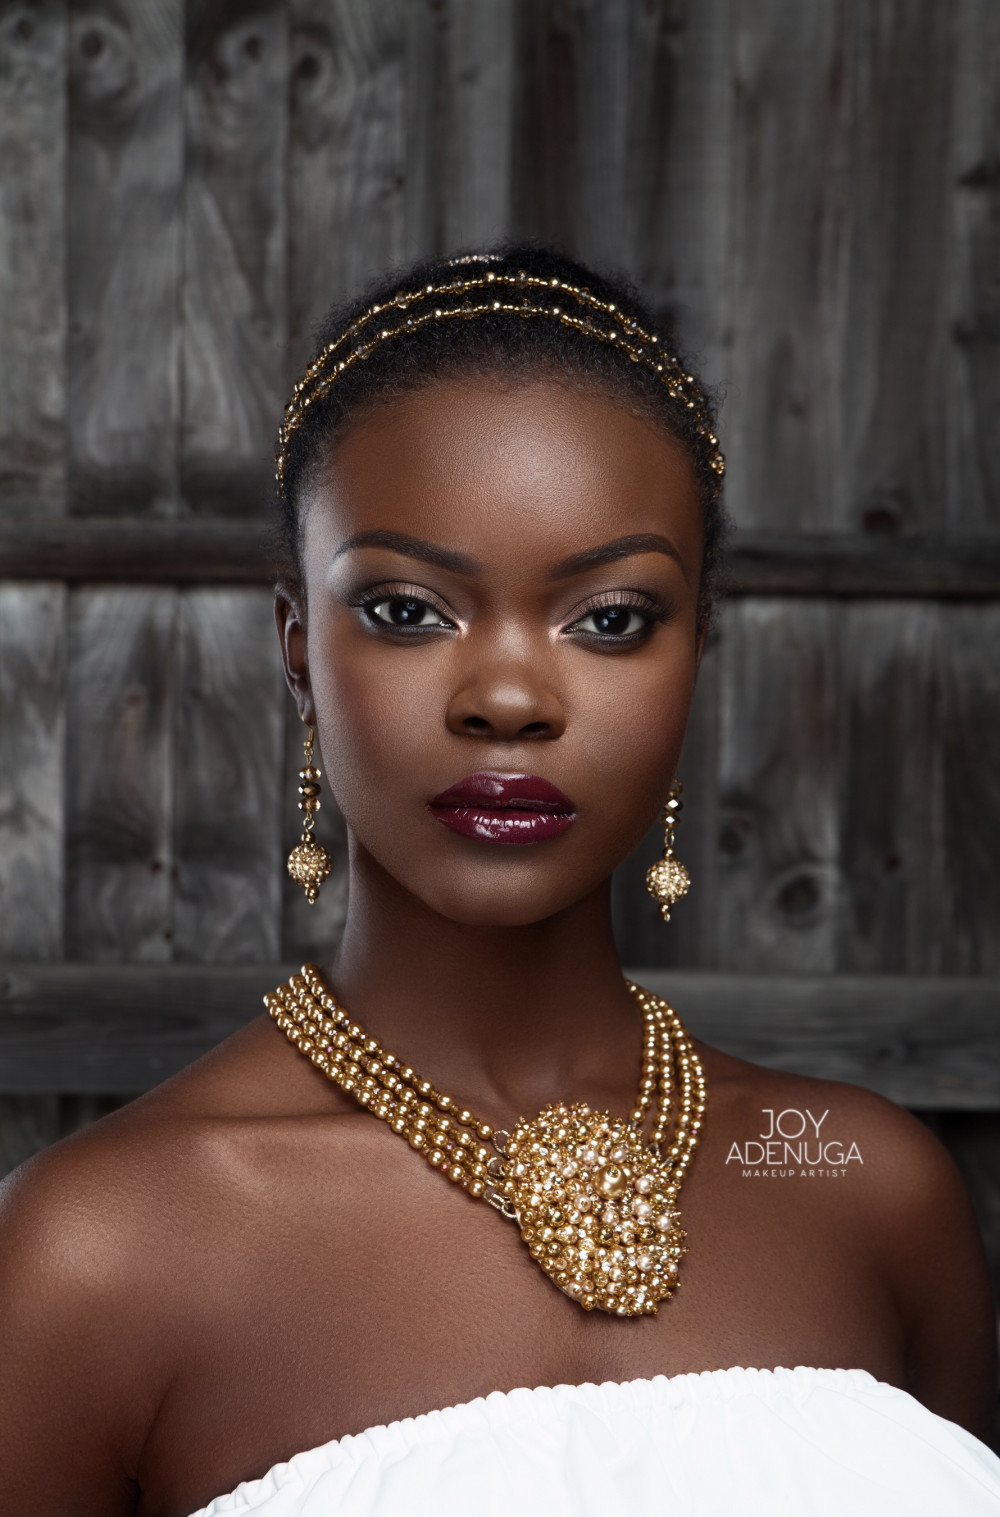 joy-adenuga-bridal-makeup-inspiration-shoot_img_2334